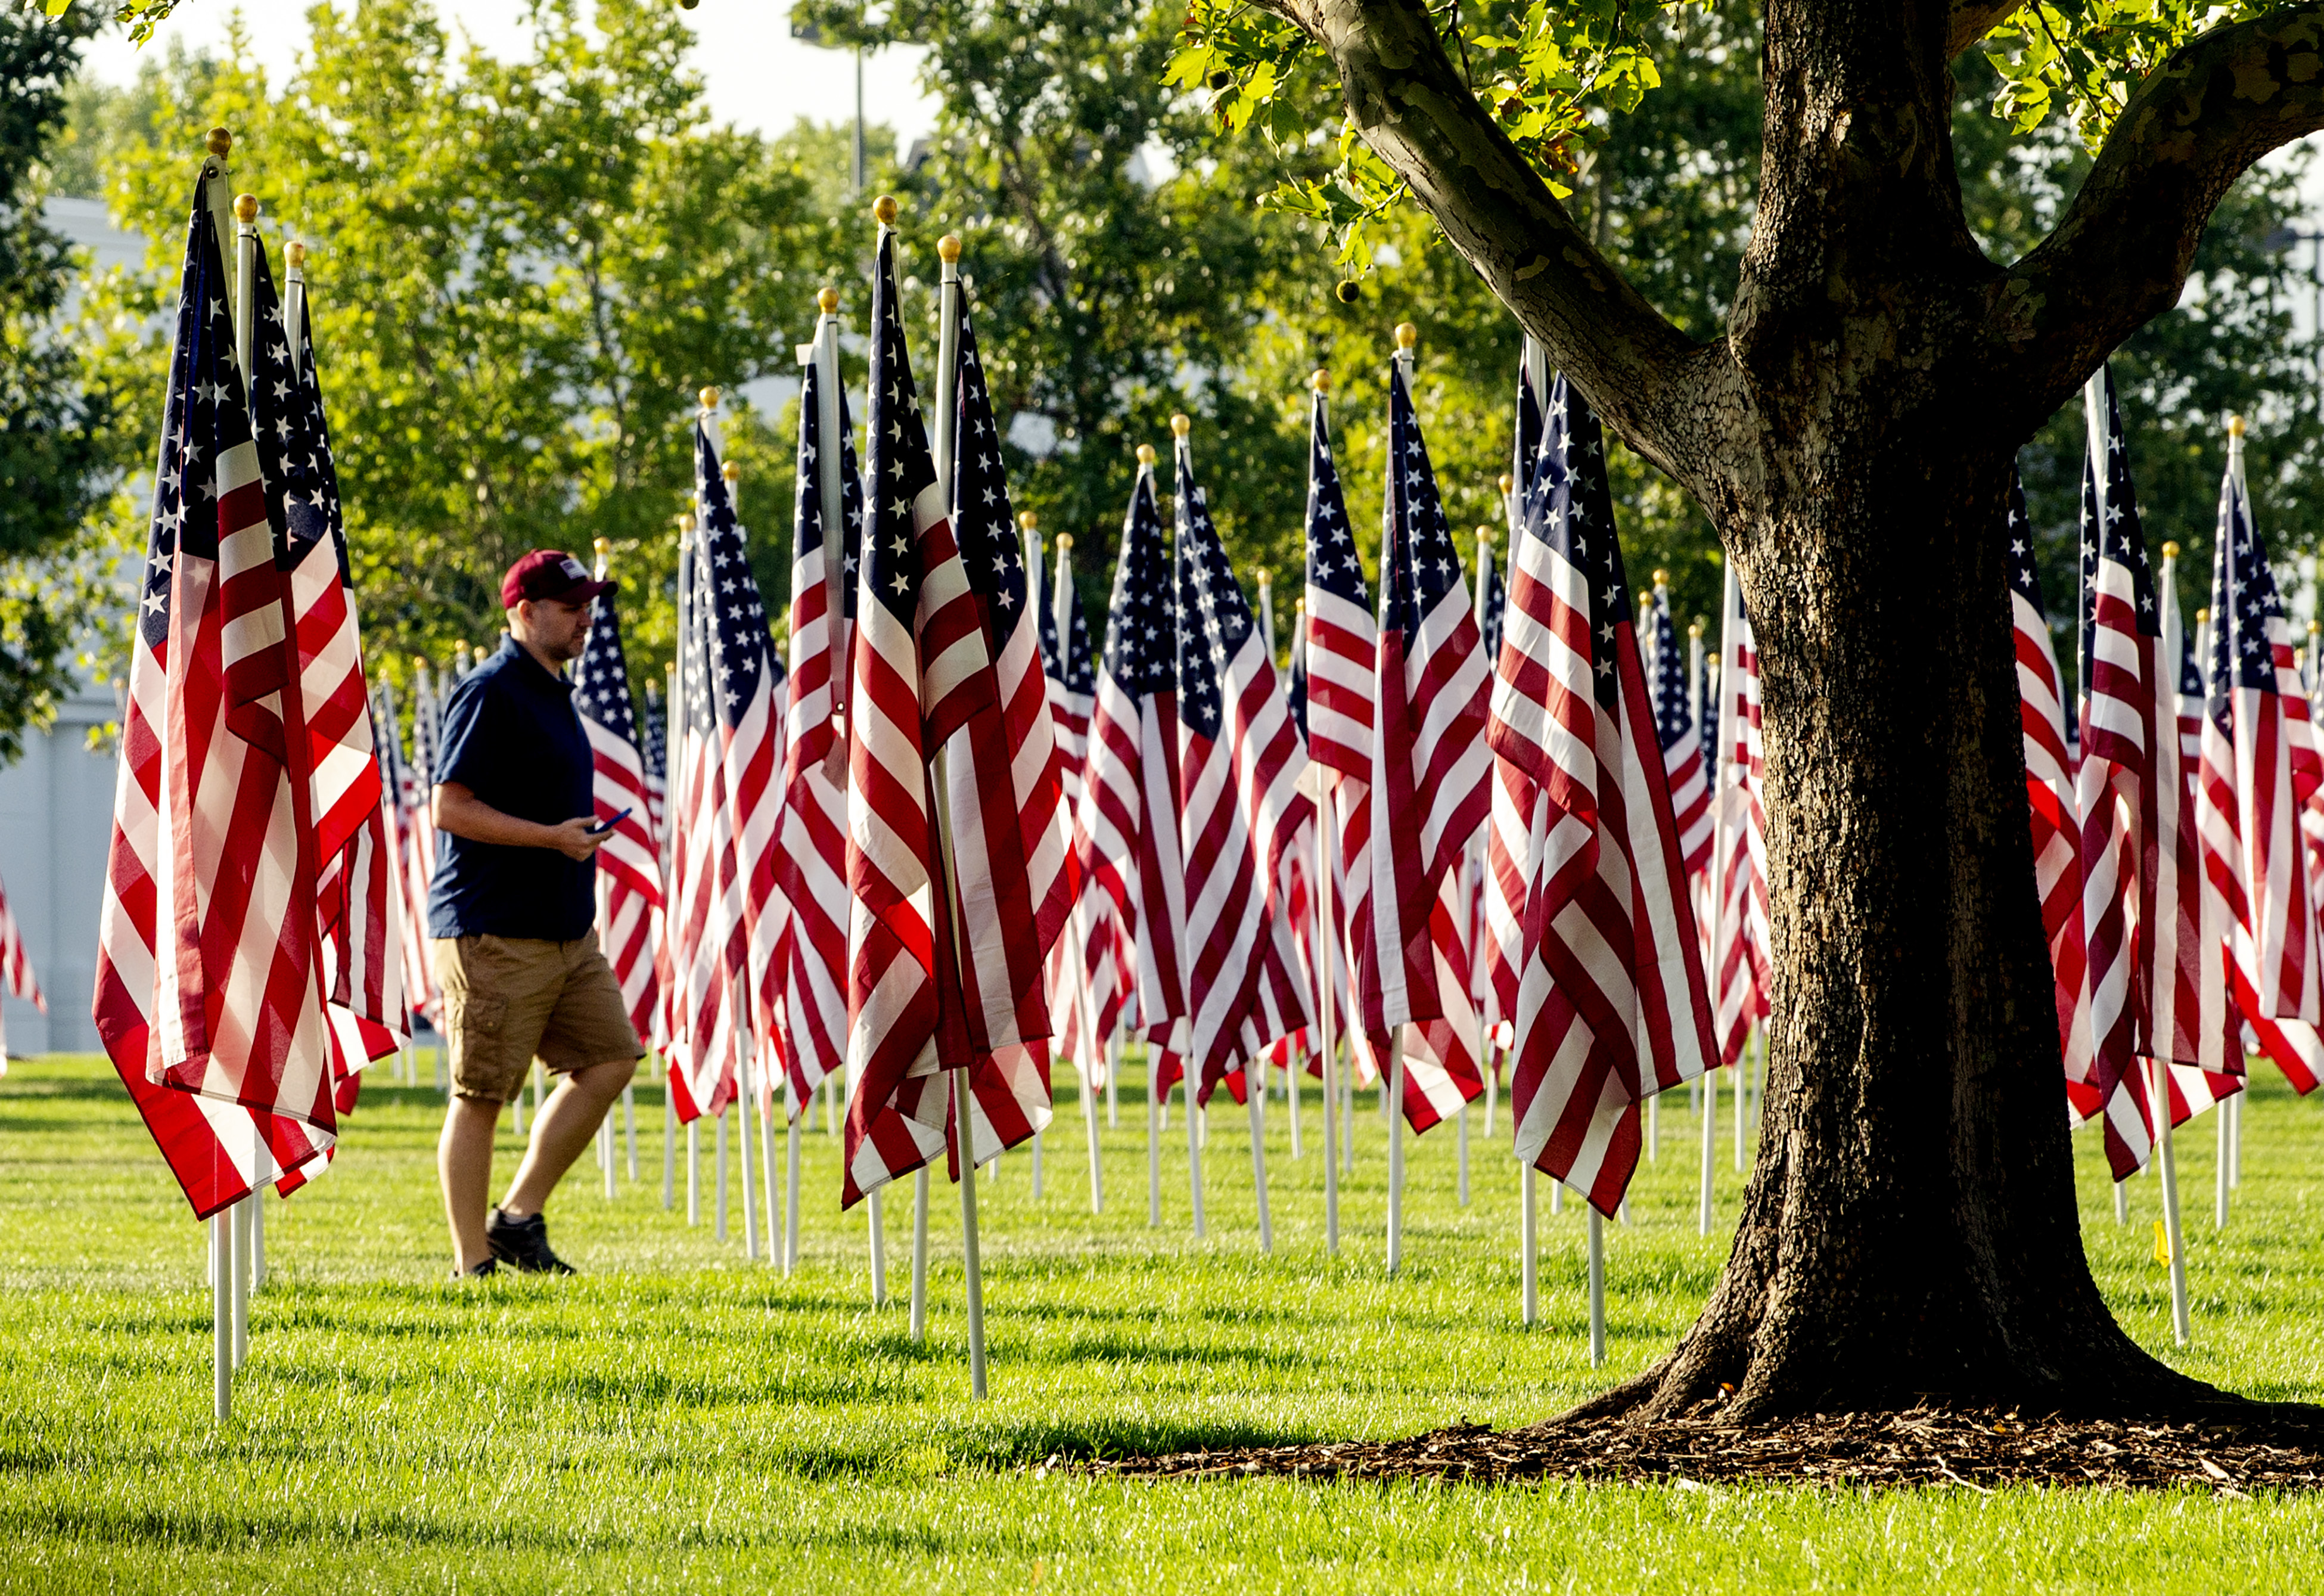 Jason Both, of Lehi, looks for a spot to take a photo as he visits the Utah Healing Field outside Sandy City Hall on Monday, Sept. 10, 2018. The massive display, a tradition since 2002, features 3,000 American flags in honor the victims of the terrorist a